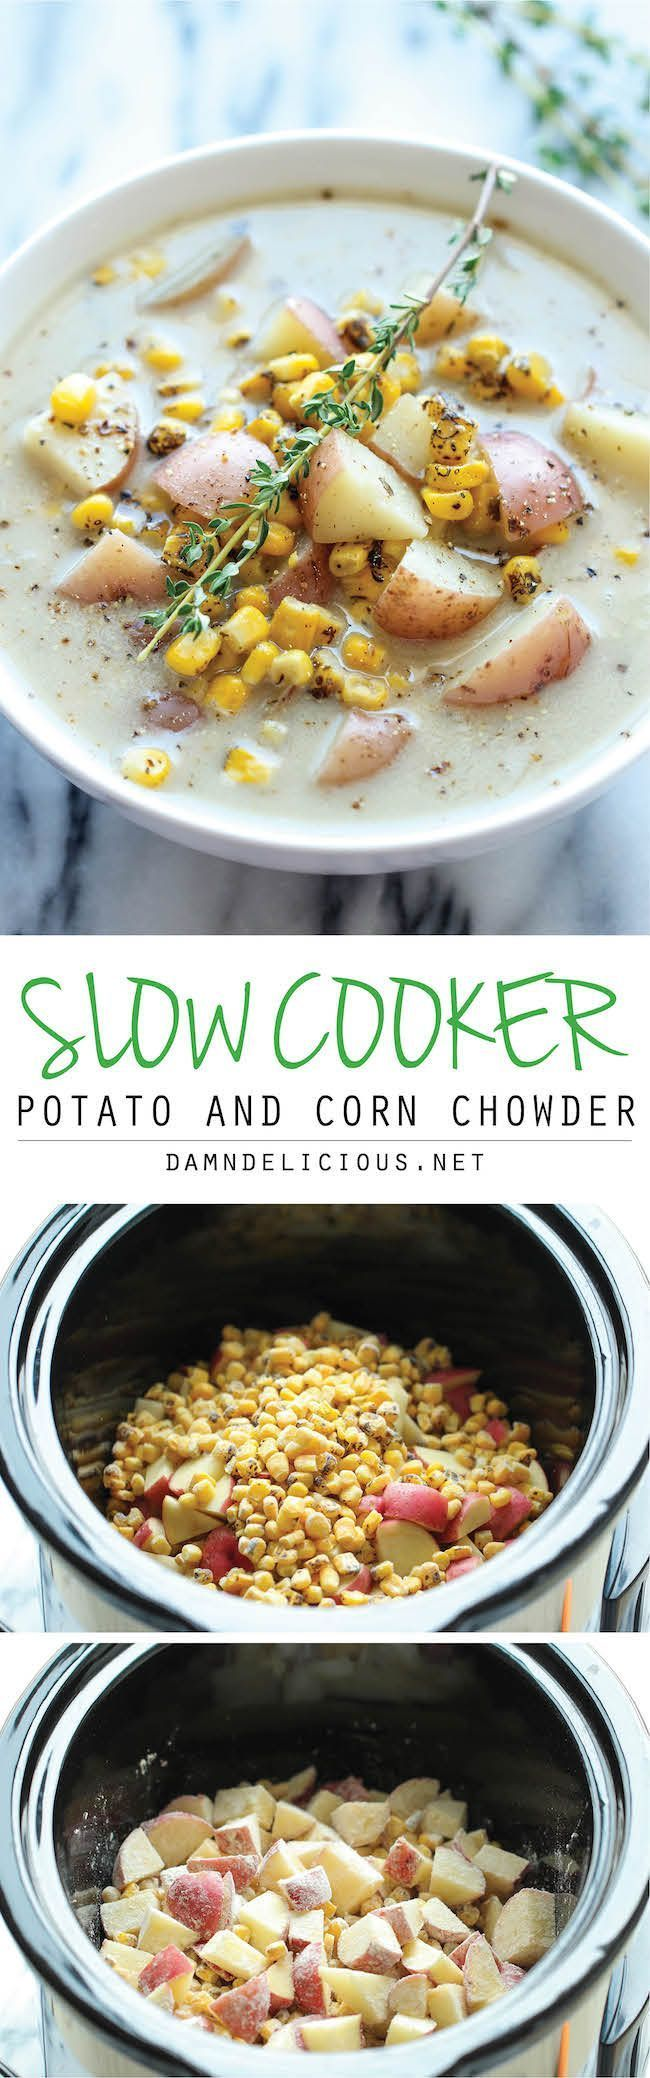 Slow Cooker Potato and Corn Chowder - The easiest chowder you will ever make. Throw everything in the crockpot and you're set!